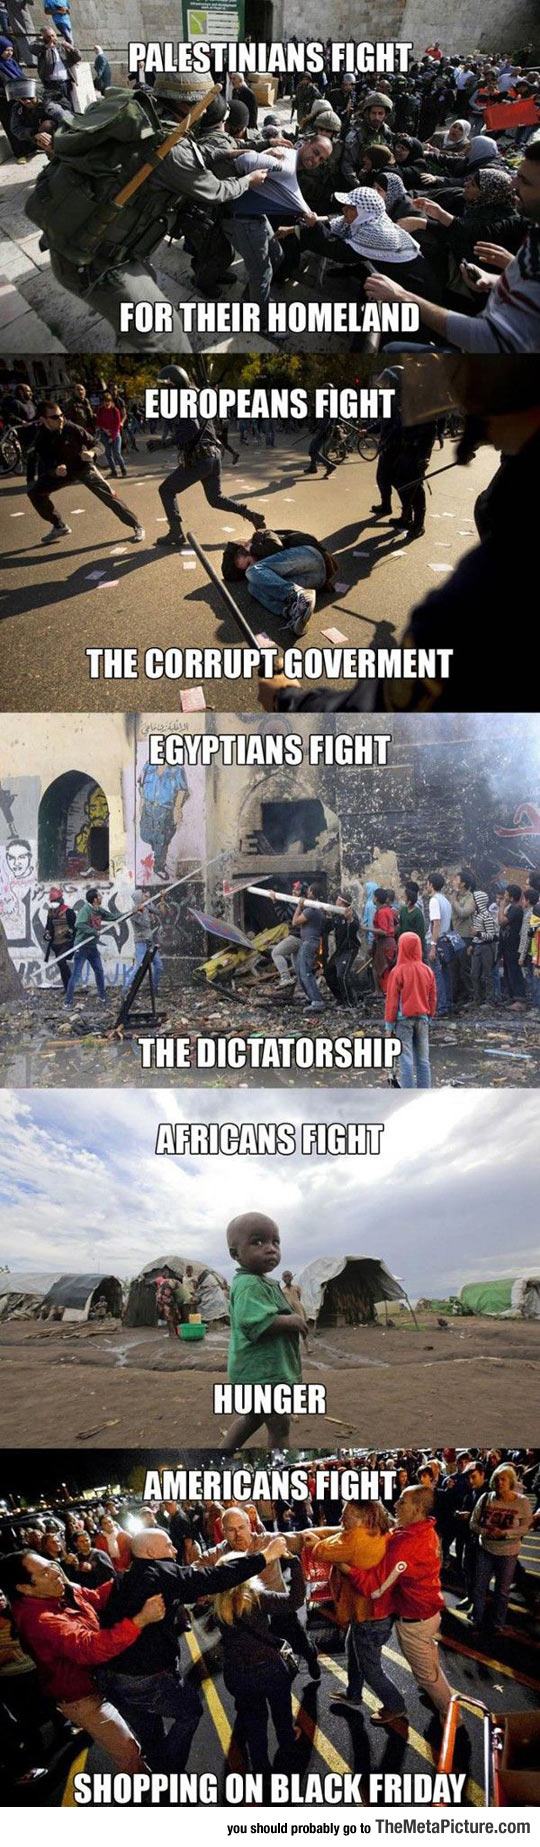 cool-fight-countries-Back-Friday